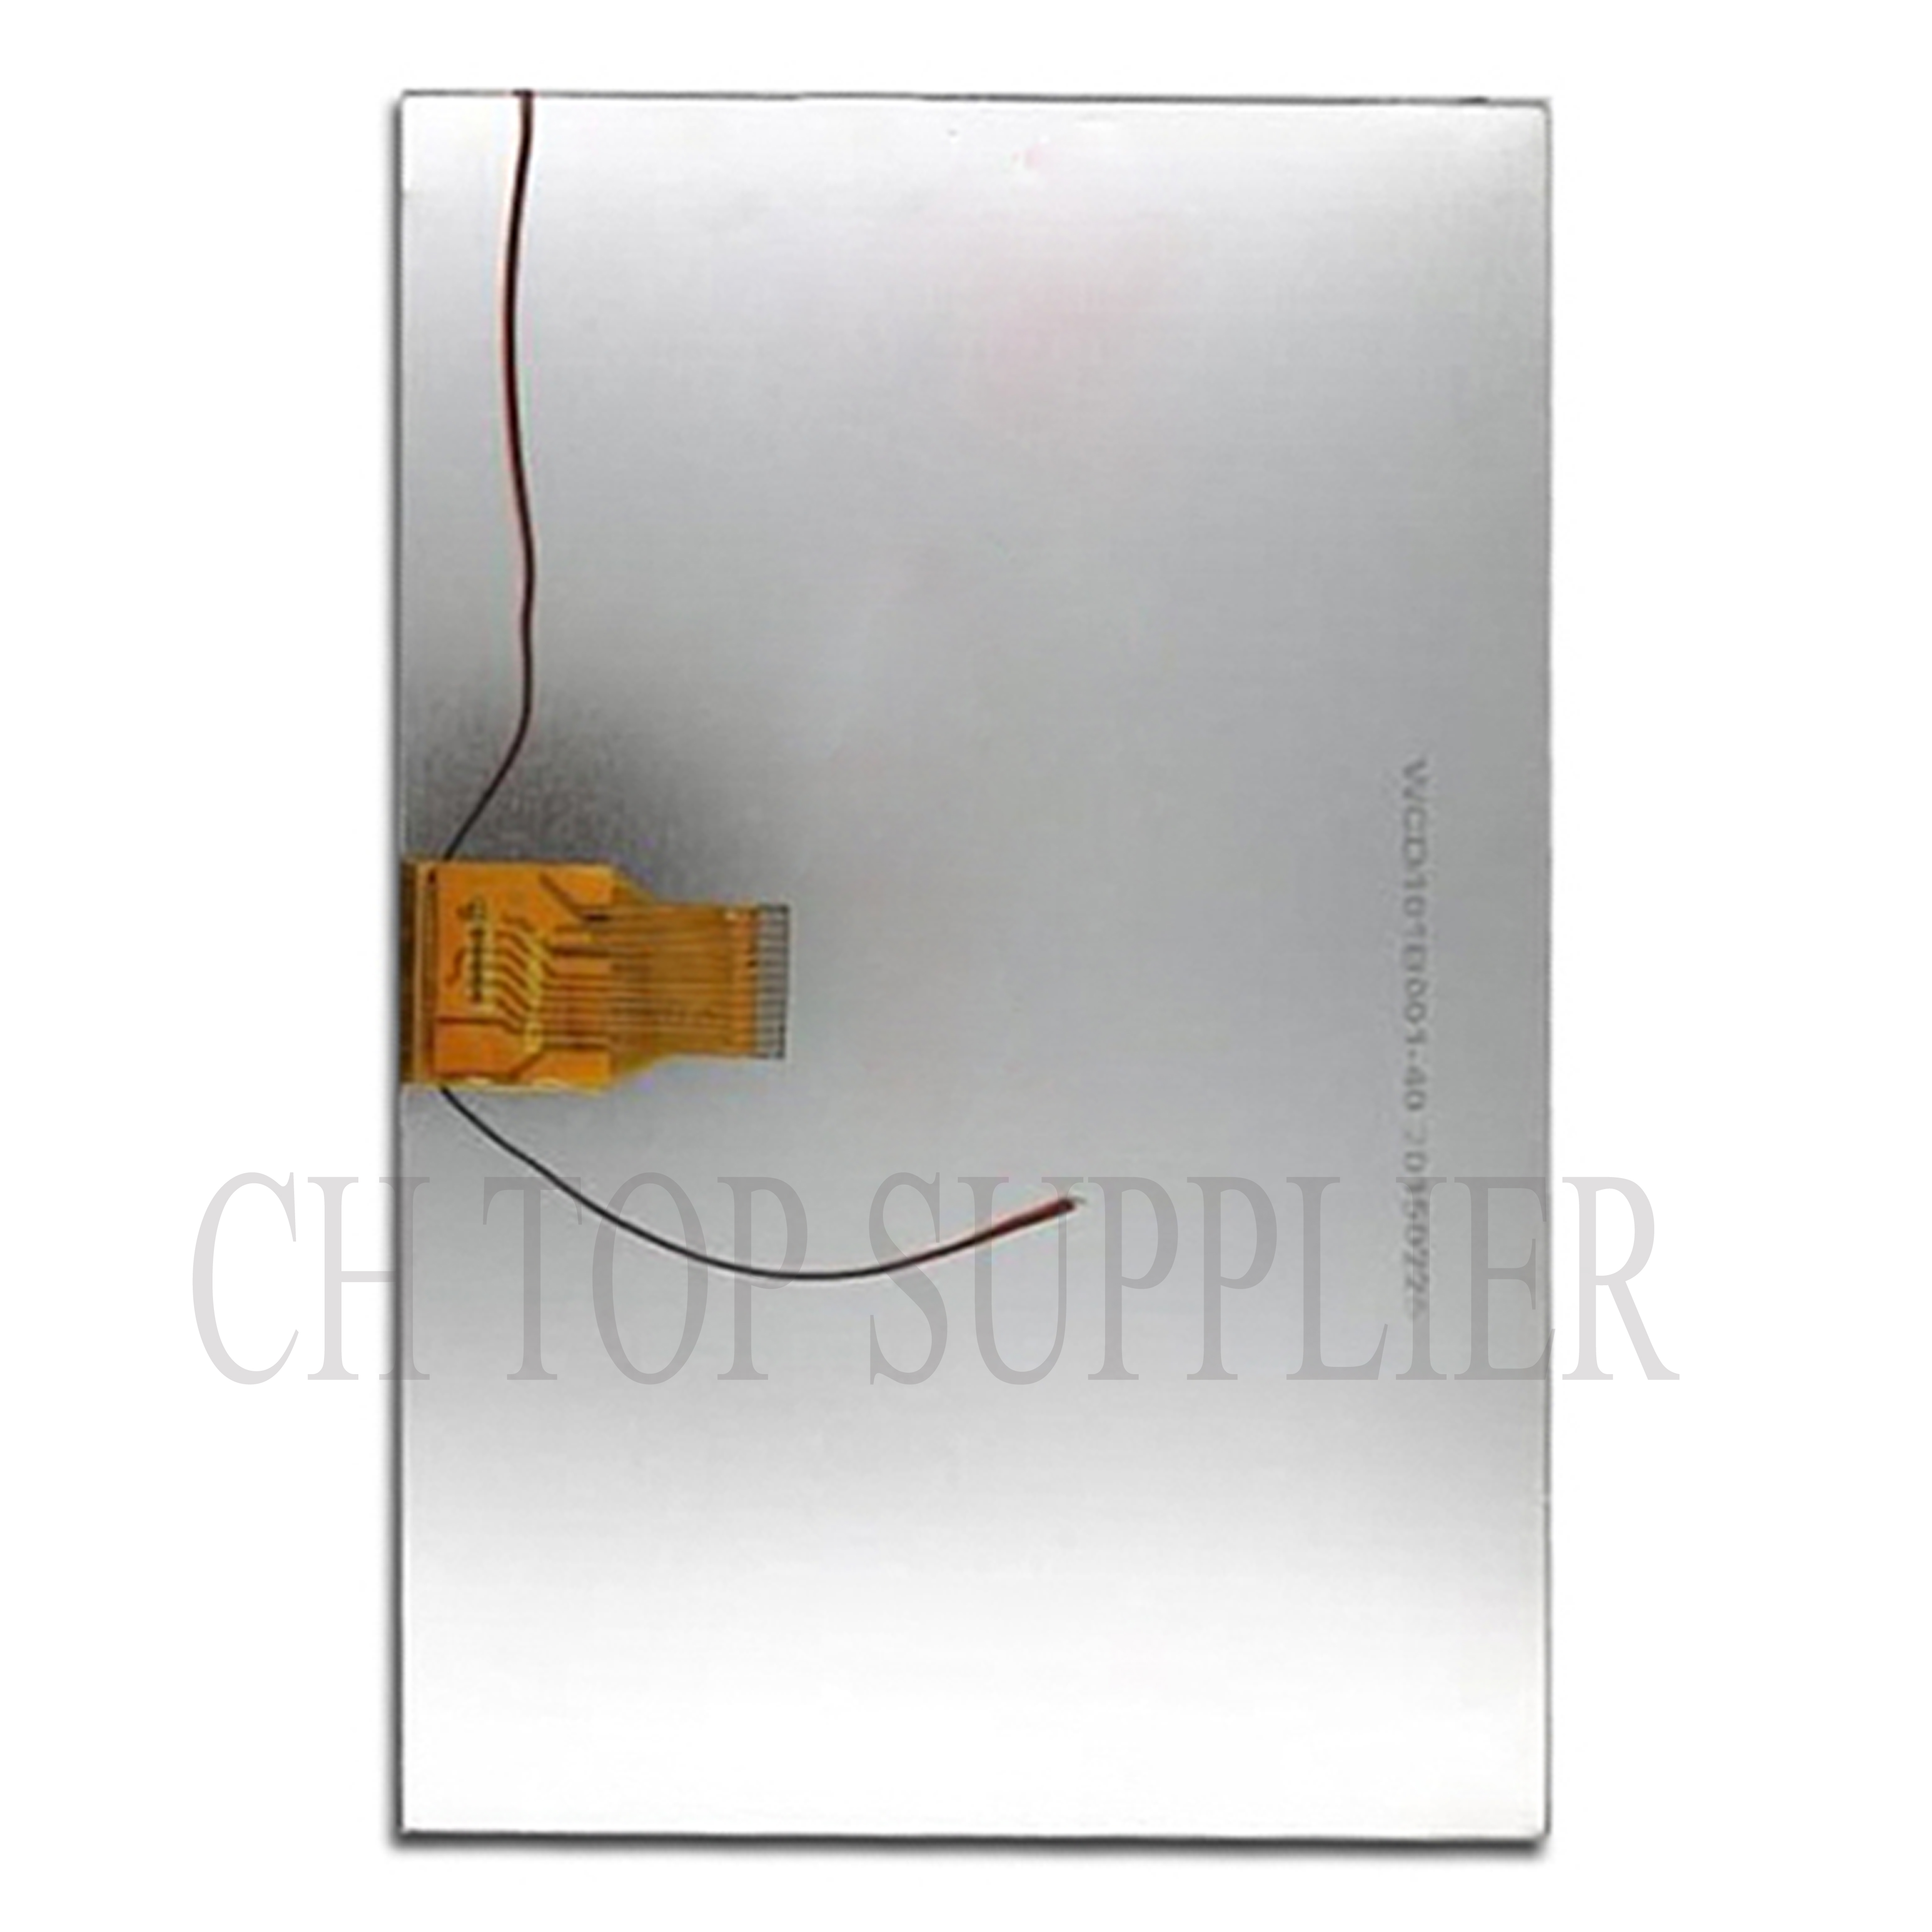 New LCD Display 10.1 RoverPad TESLA 10.1 3G Tablet TFT LCD Screen Matrix Replacement Panel Parts Free Shipping lcd display matrix 7 inch tablet al0203b 01 30p tft lcd screen panel lens frame replacement free shipping page 2